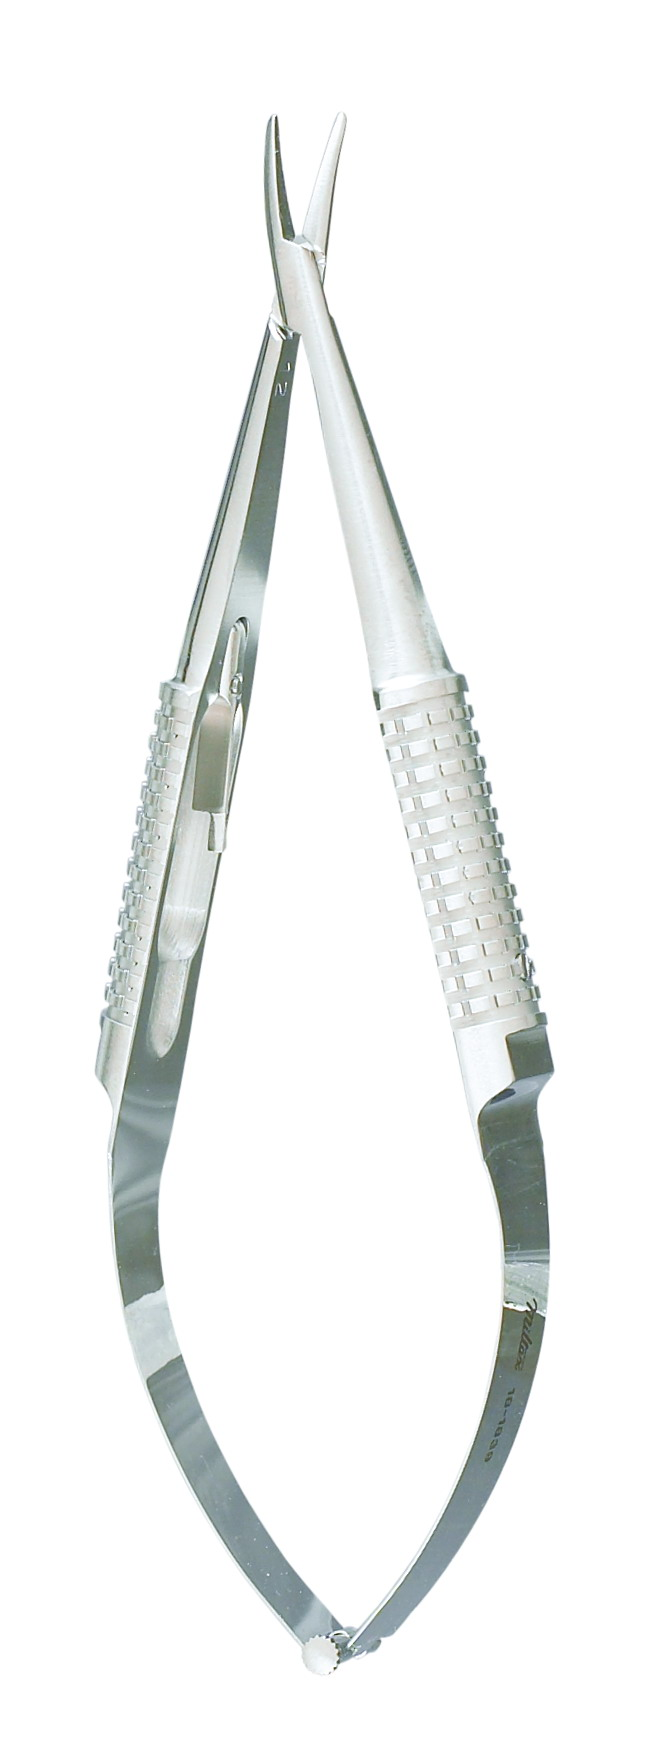 barraquer-needle-holder-curved-10-mm-wide-hollow-round-handle-with-lock-18-1839-miltex.jpg